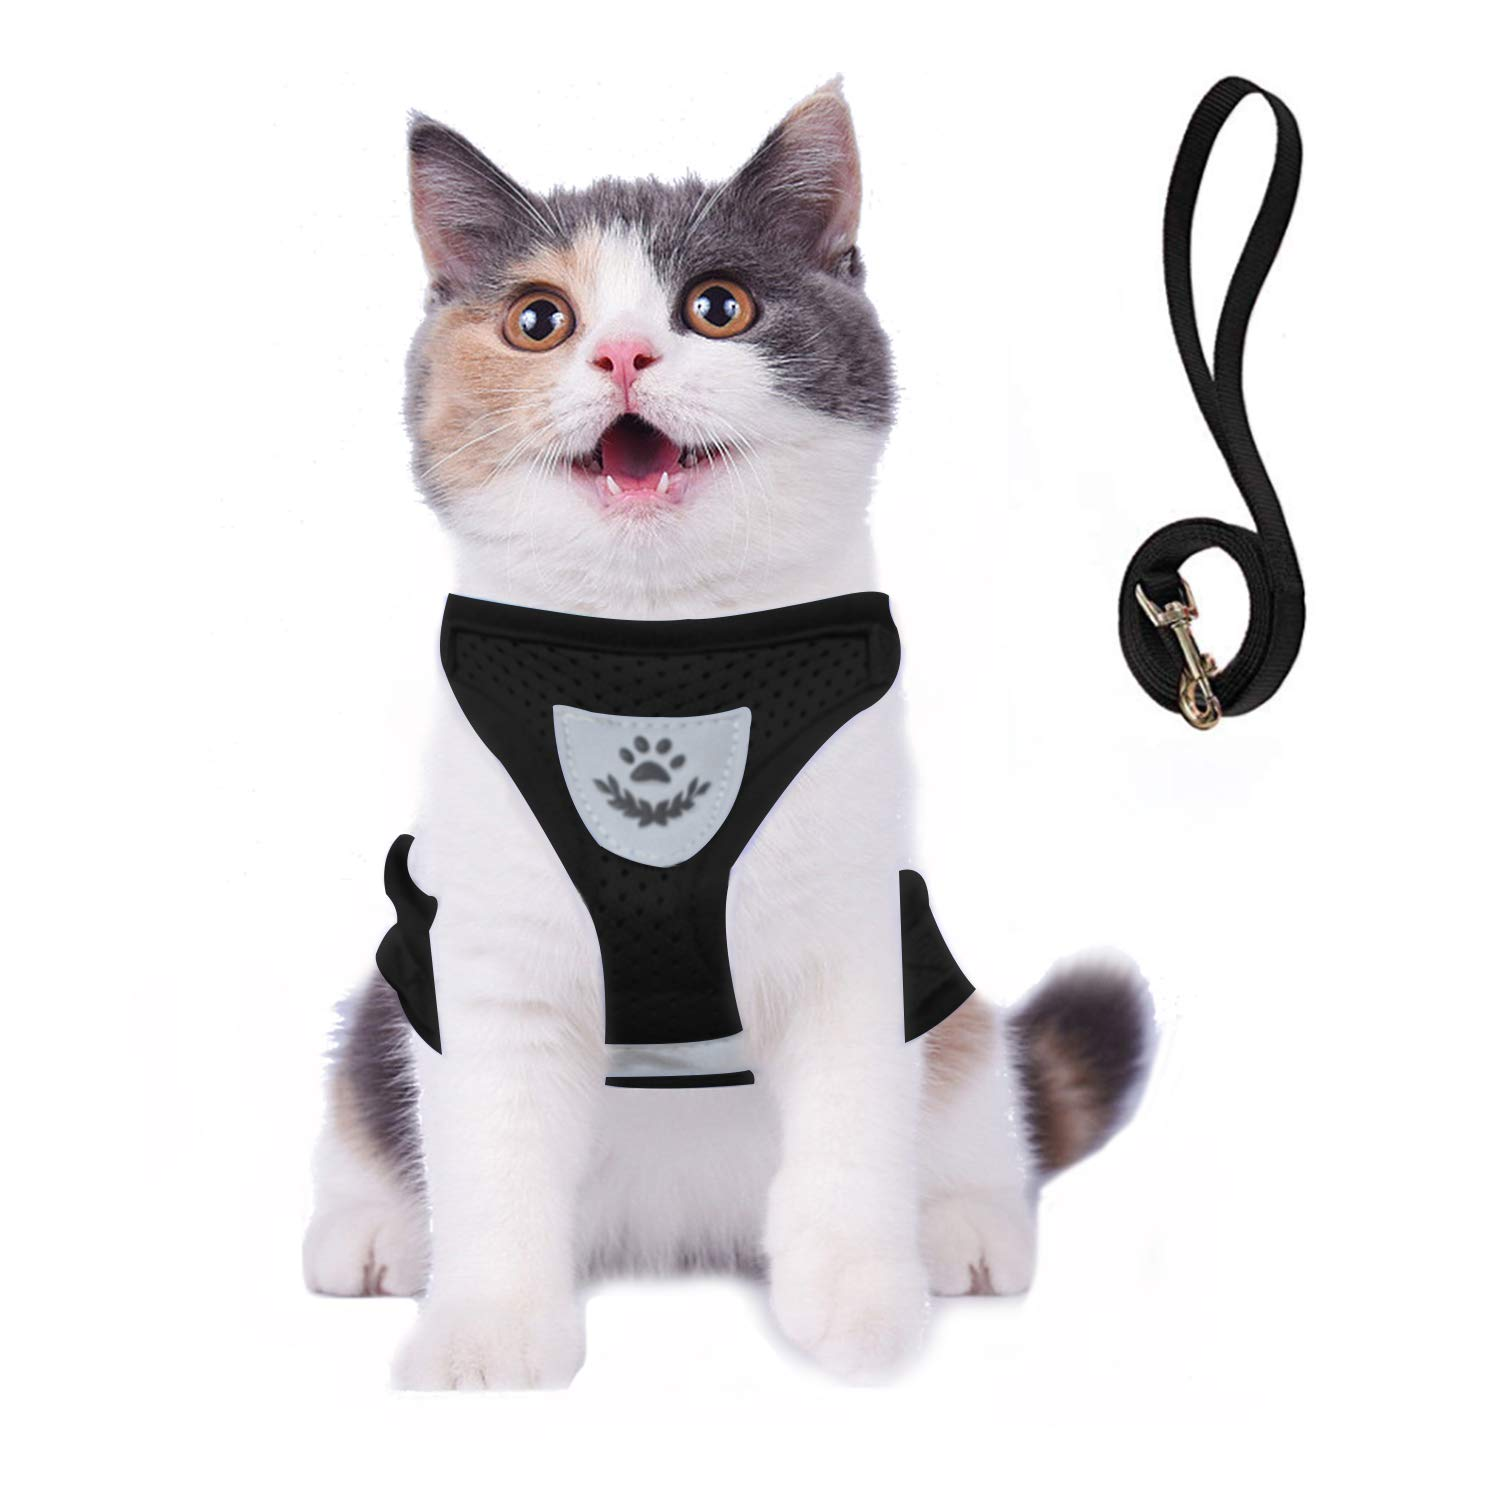 Cat Harness and Leash Escape Proof and Dog Harness Adjustable Soft Mesh Vest Harness for Walking with Reflective Strap…